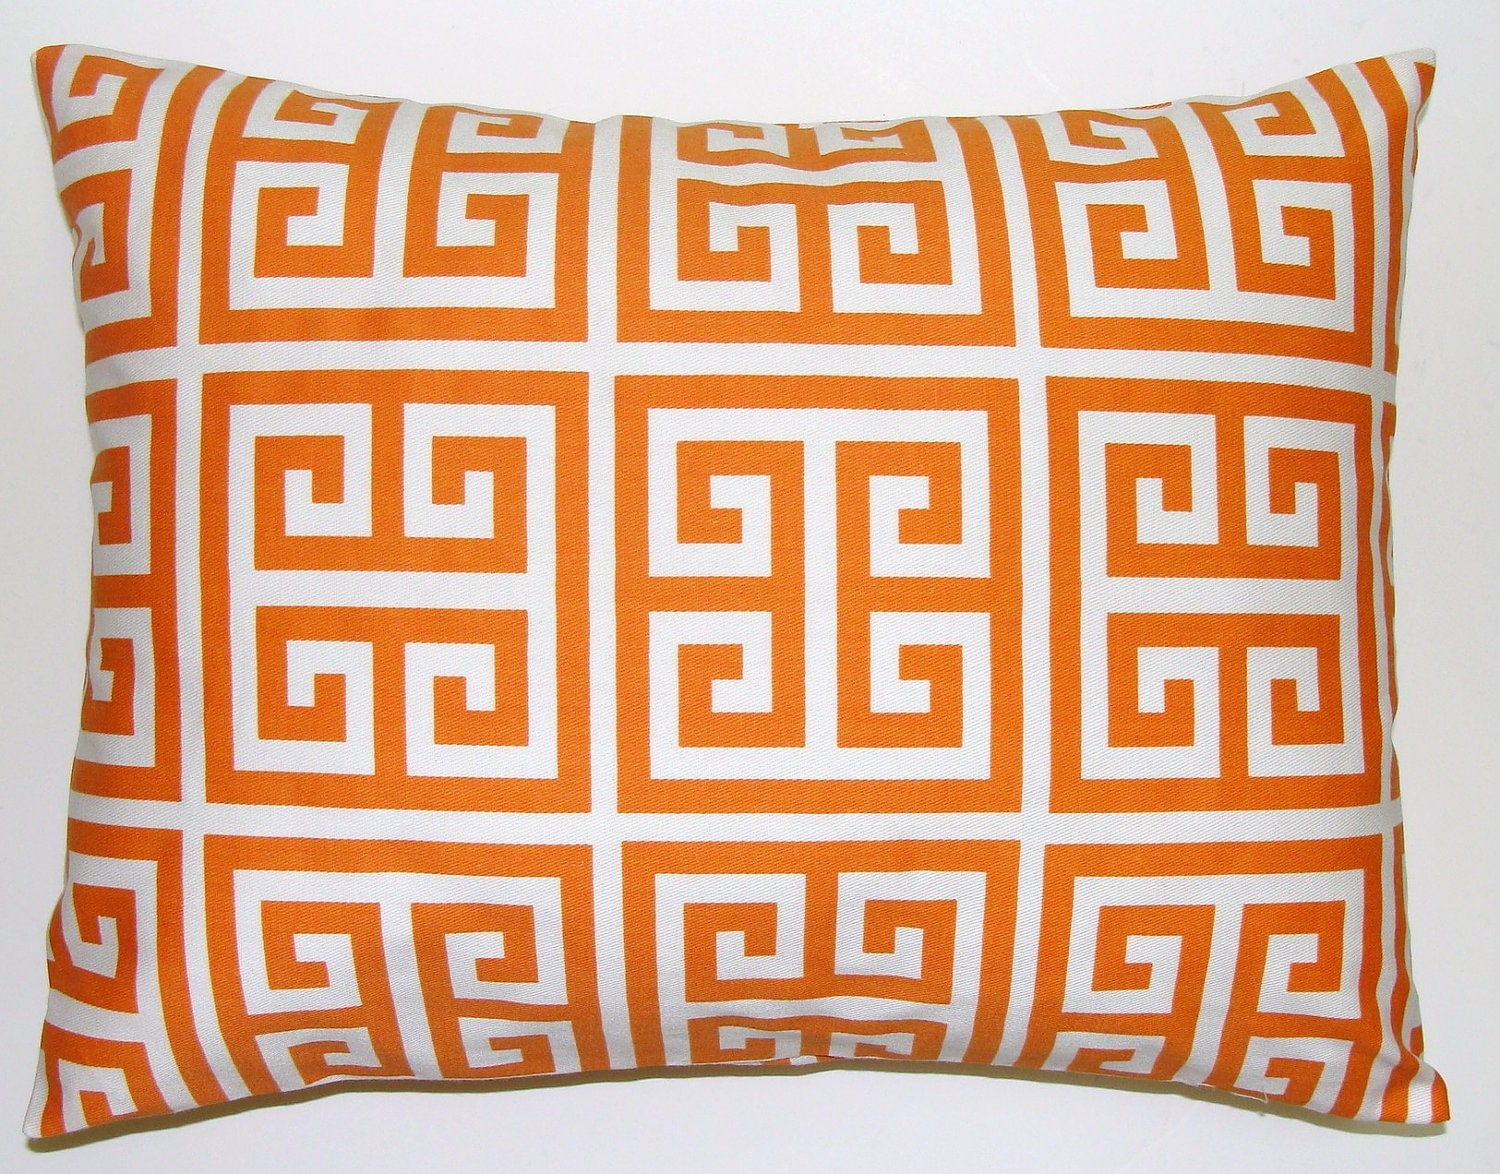 Tangarine Orange Pillow.Greek Key.16x20 or 12x20 inch Decorator Lumbar Pillow Cover.Printed Fabric Front and Back